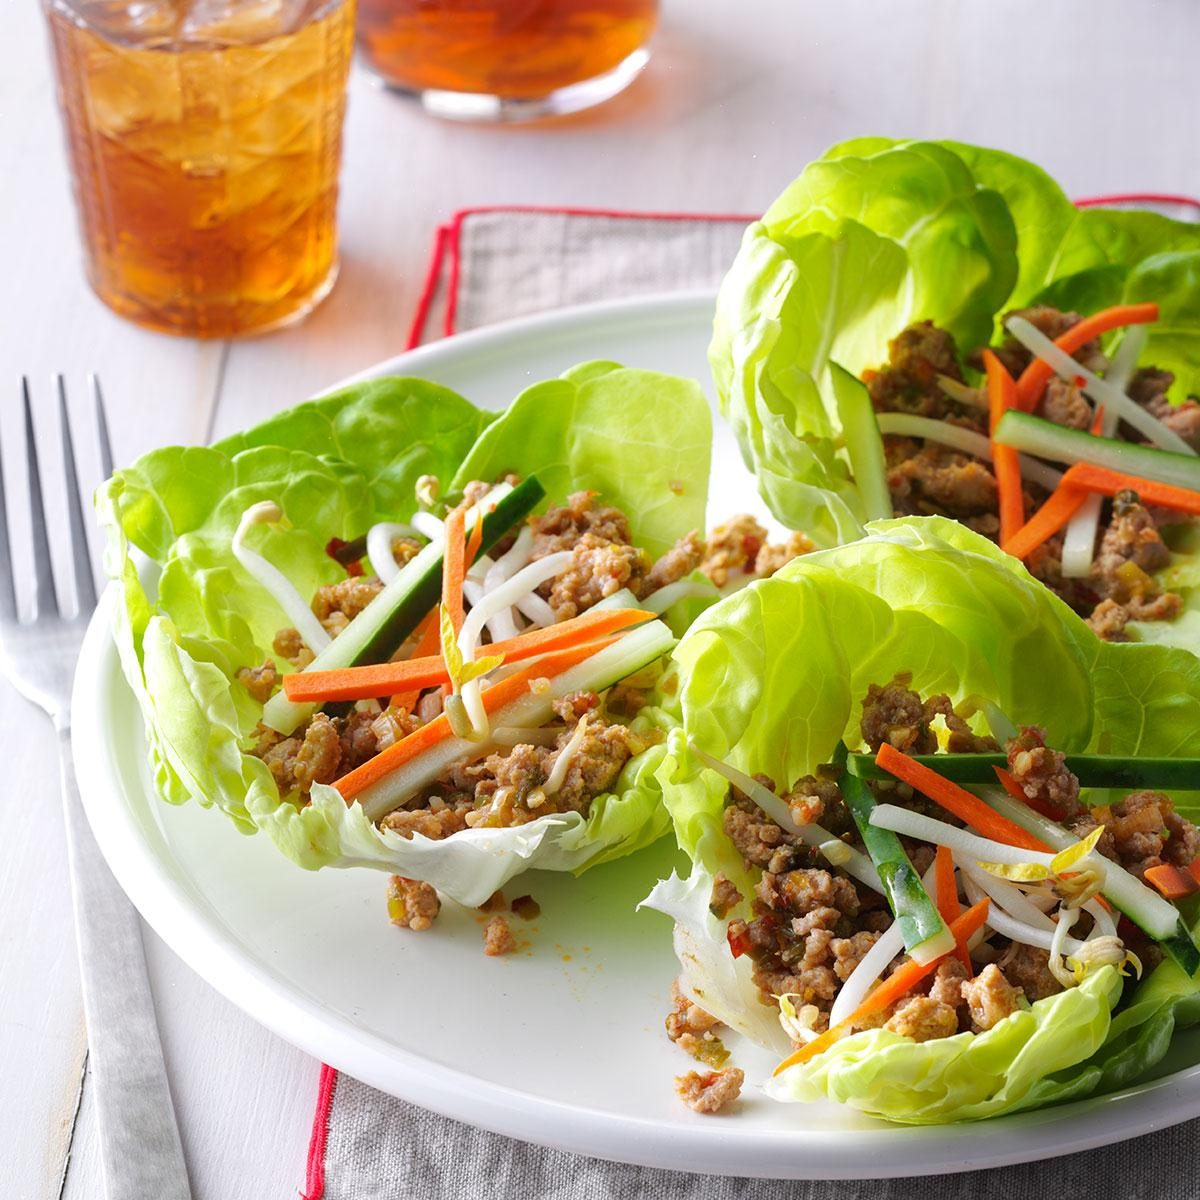 Inspired by: PF Chang's Lettuce Wraps